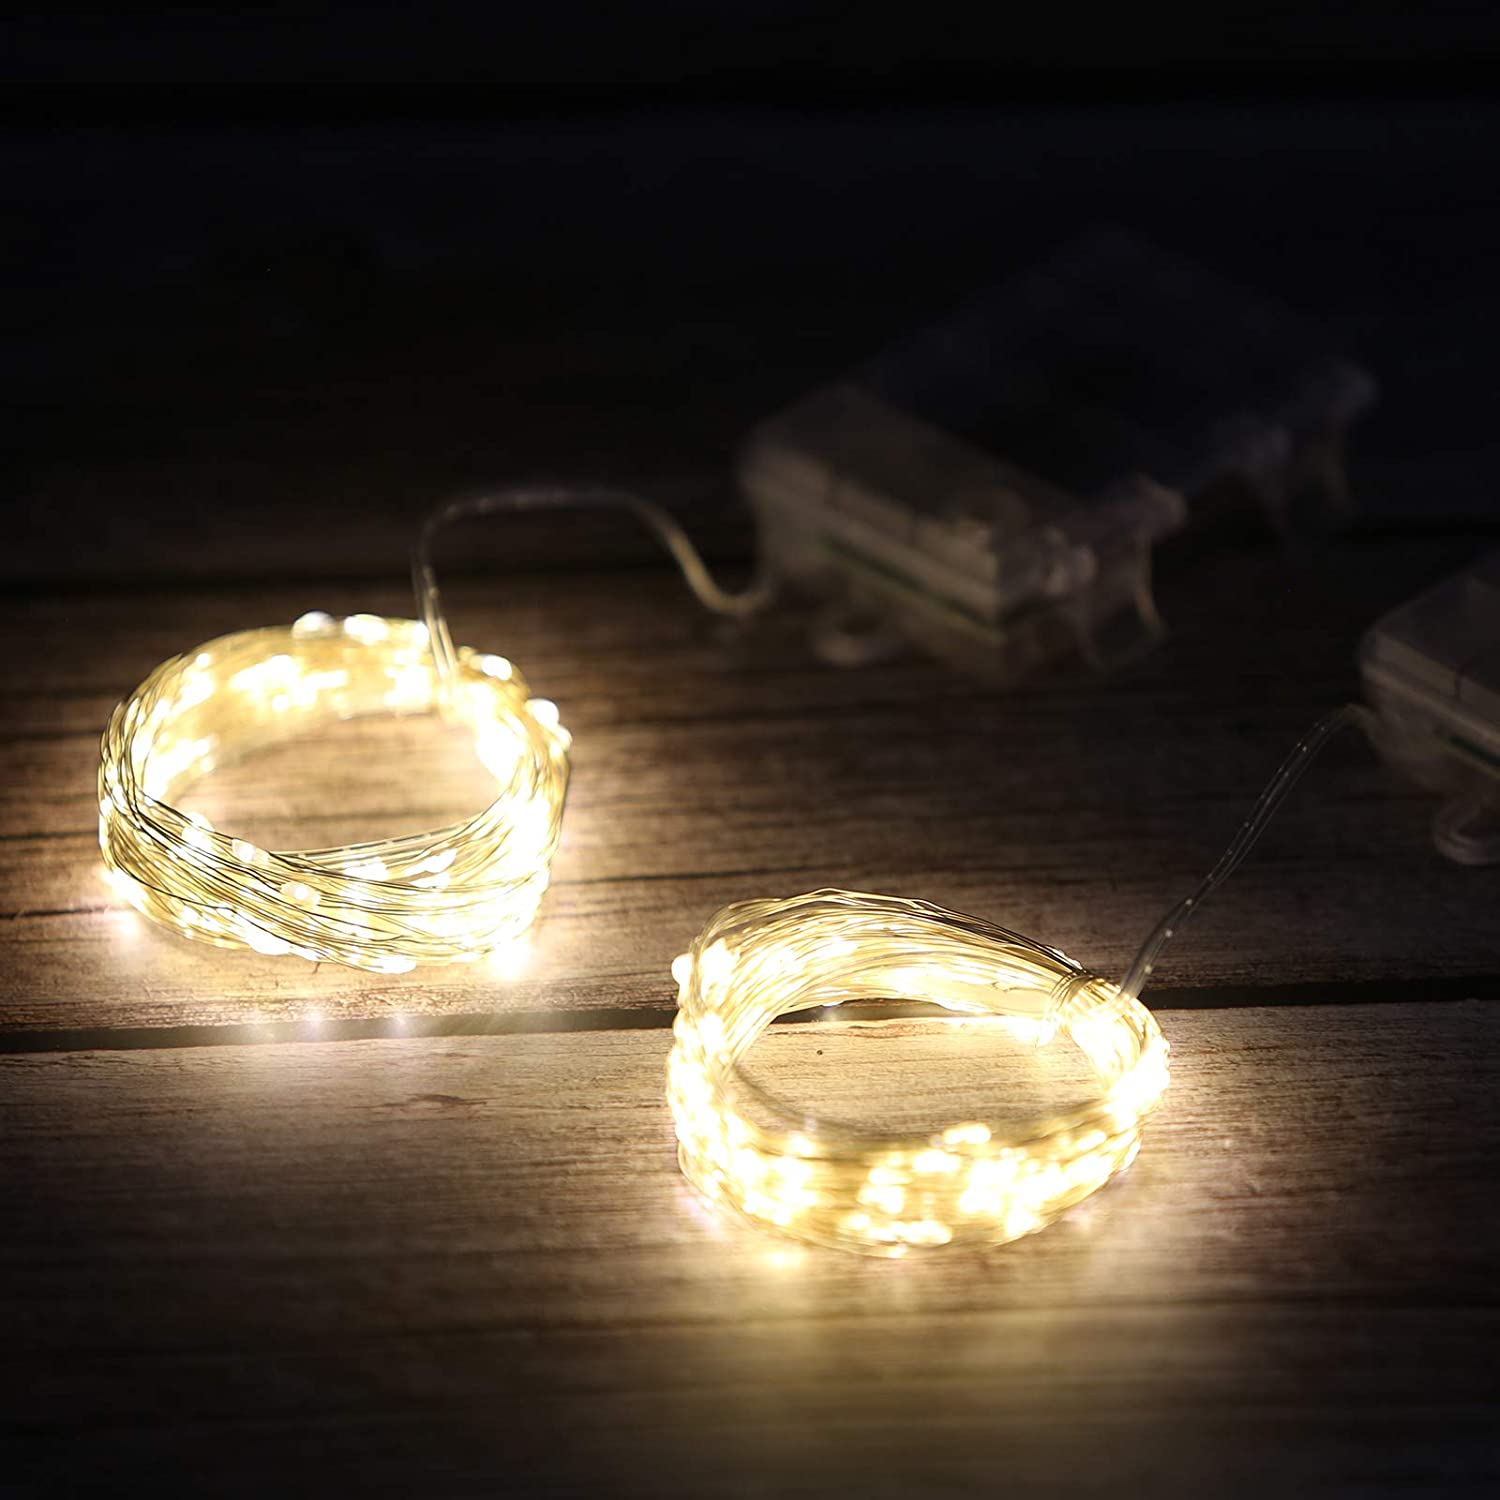 CLICIC Fairy String Lights with Remote 2 Packs USB Powered Copper Wire Starry Fairy Lights for DIY Wedding Party Christmas Warm Light